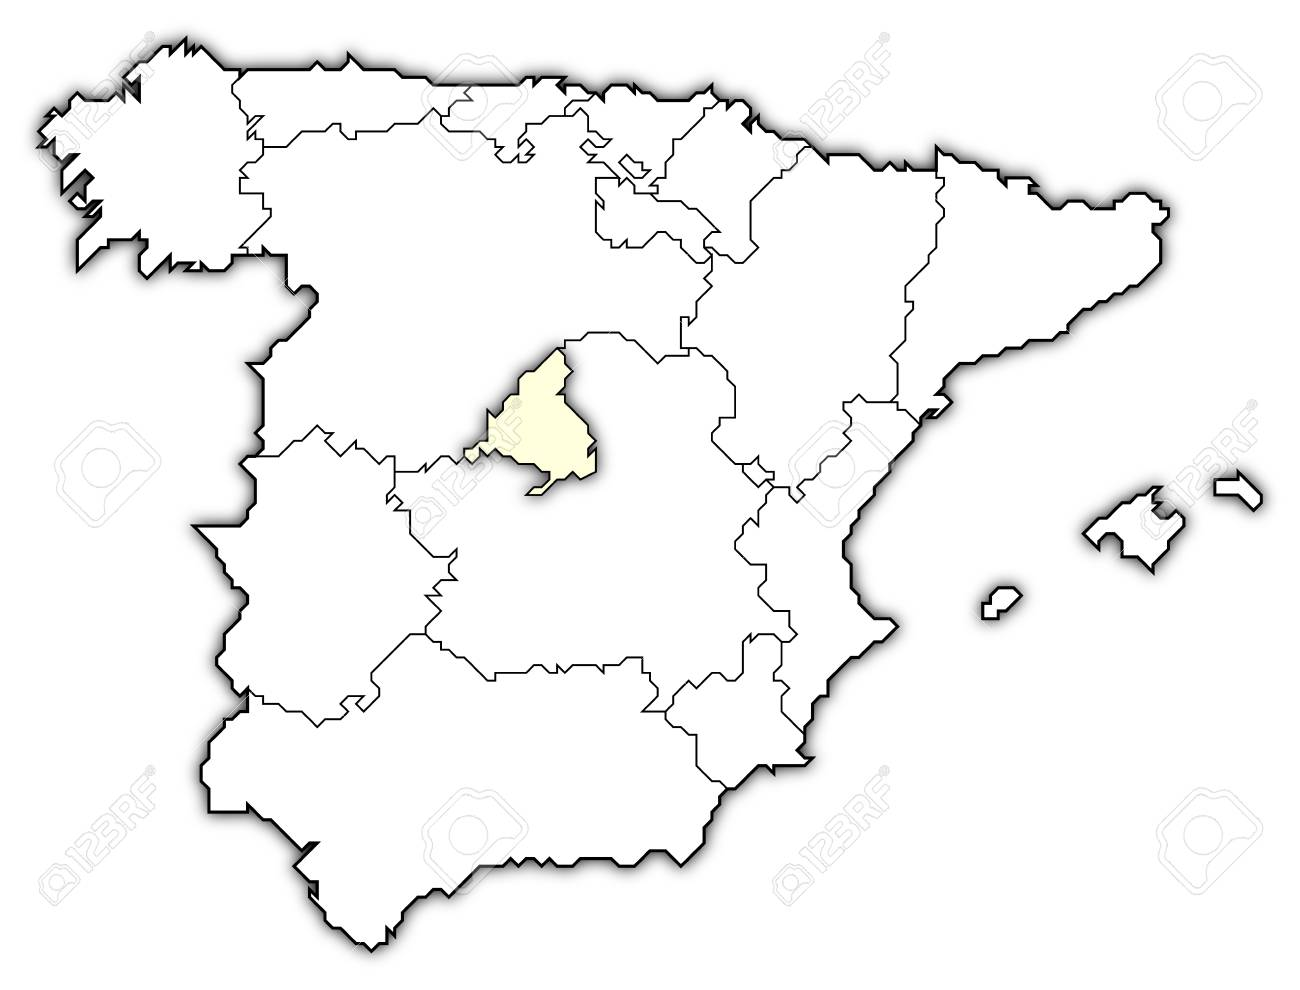 Map Of Spain Drawing.Political Map Of Spain With The Several Regions Where Madrid Stock